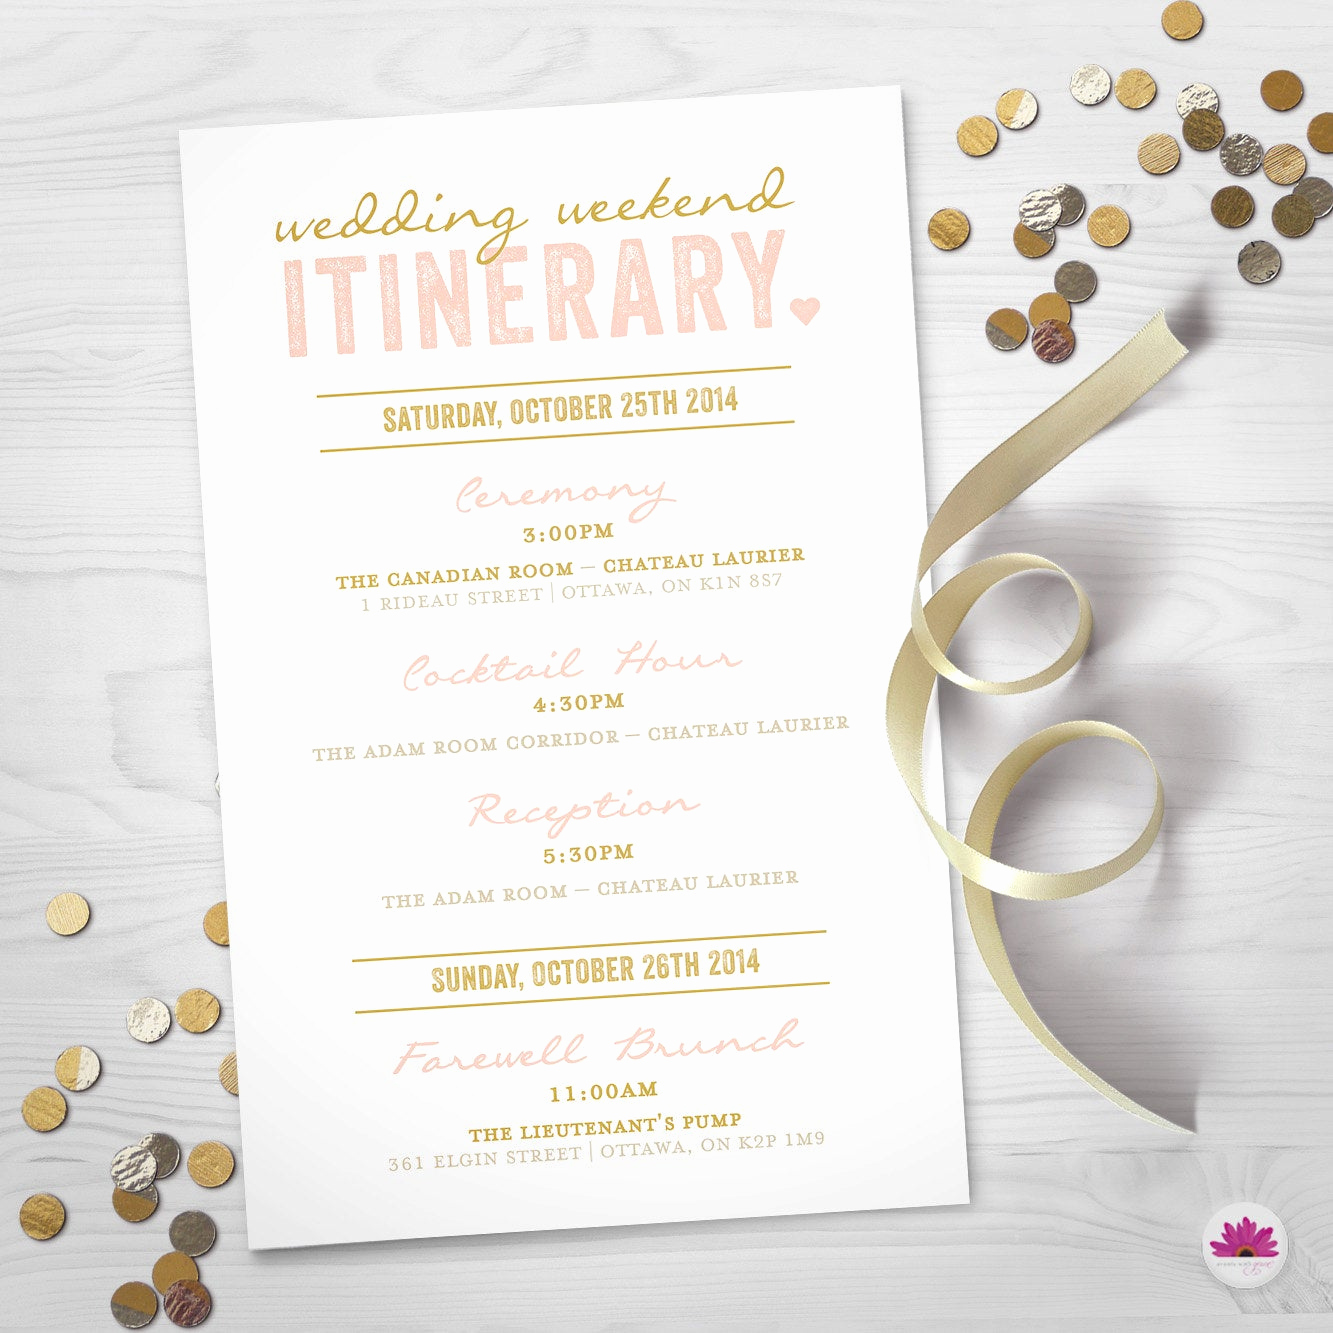 Wedding Weekend Invitation Wording Best Of Wedding Weekend Itinerary Wedding Day Timeline Digital